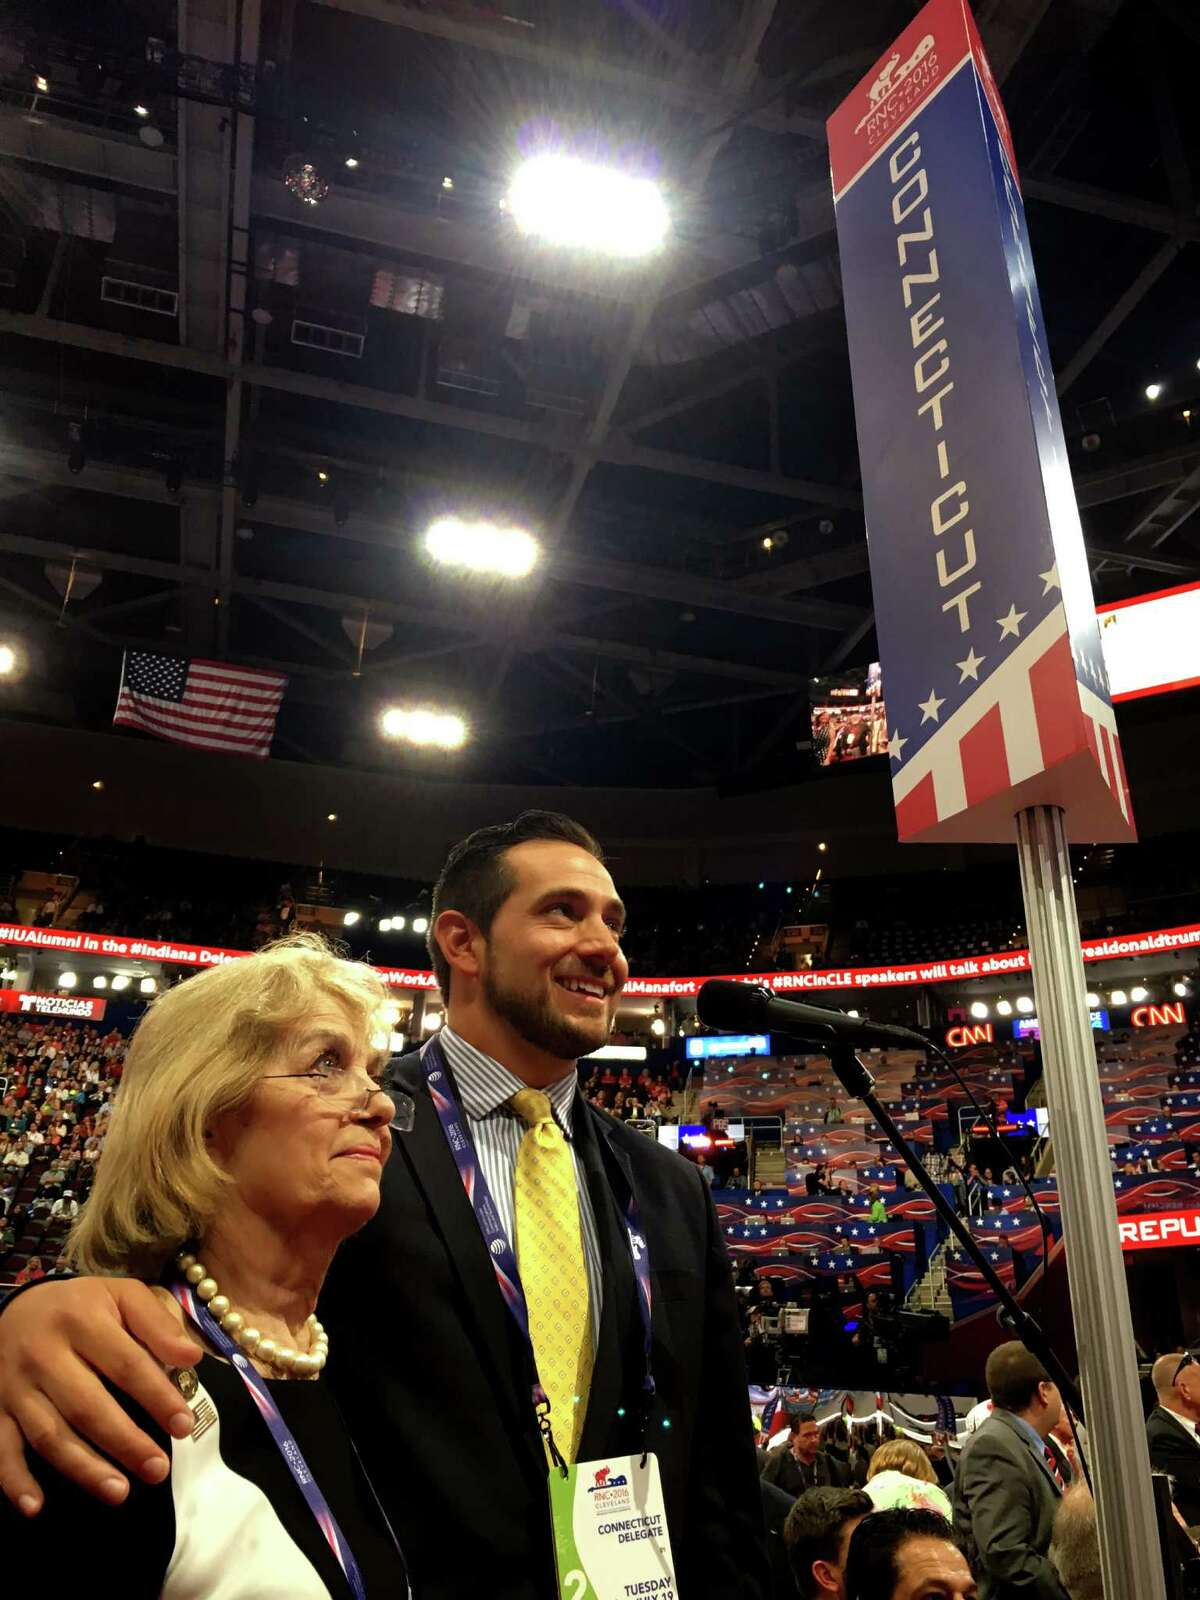 State GOP Chairman J.R. Romano puts his arm around Pat Longo, a Republican National Committee member from Norwalk, Conn. before Connecticut takes its turn during the delegate roll call for Donald Trump in Cleveland, OH on July 19, 2016.